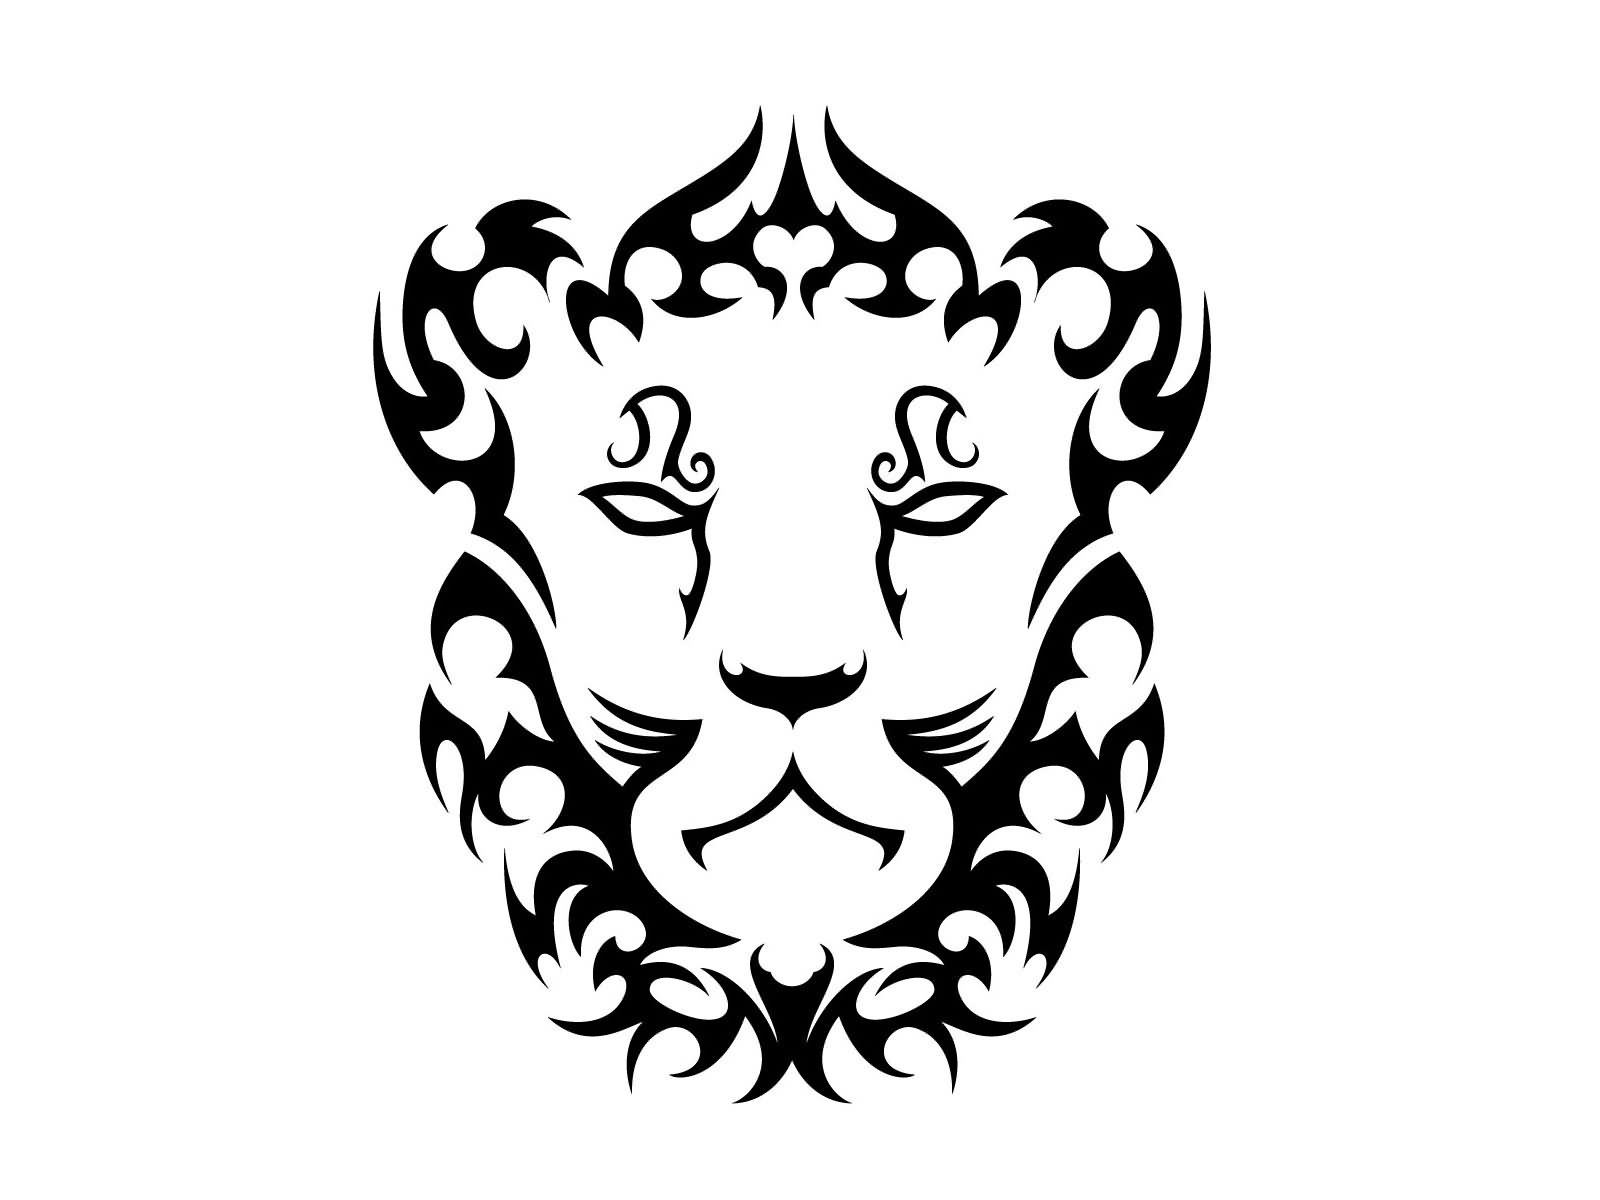 65 leo zodiac sign tattoos collection cool tribal leo head zodiac sign tattoo stencil biocorpaavc